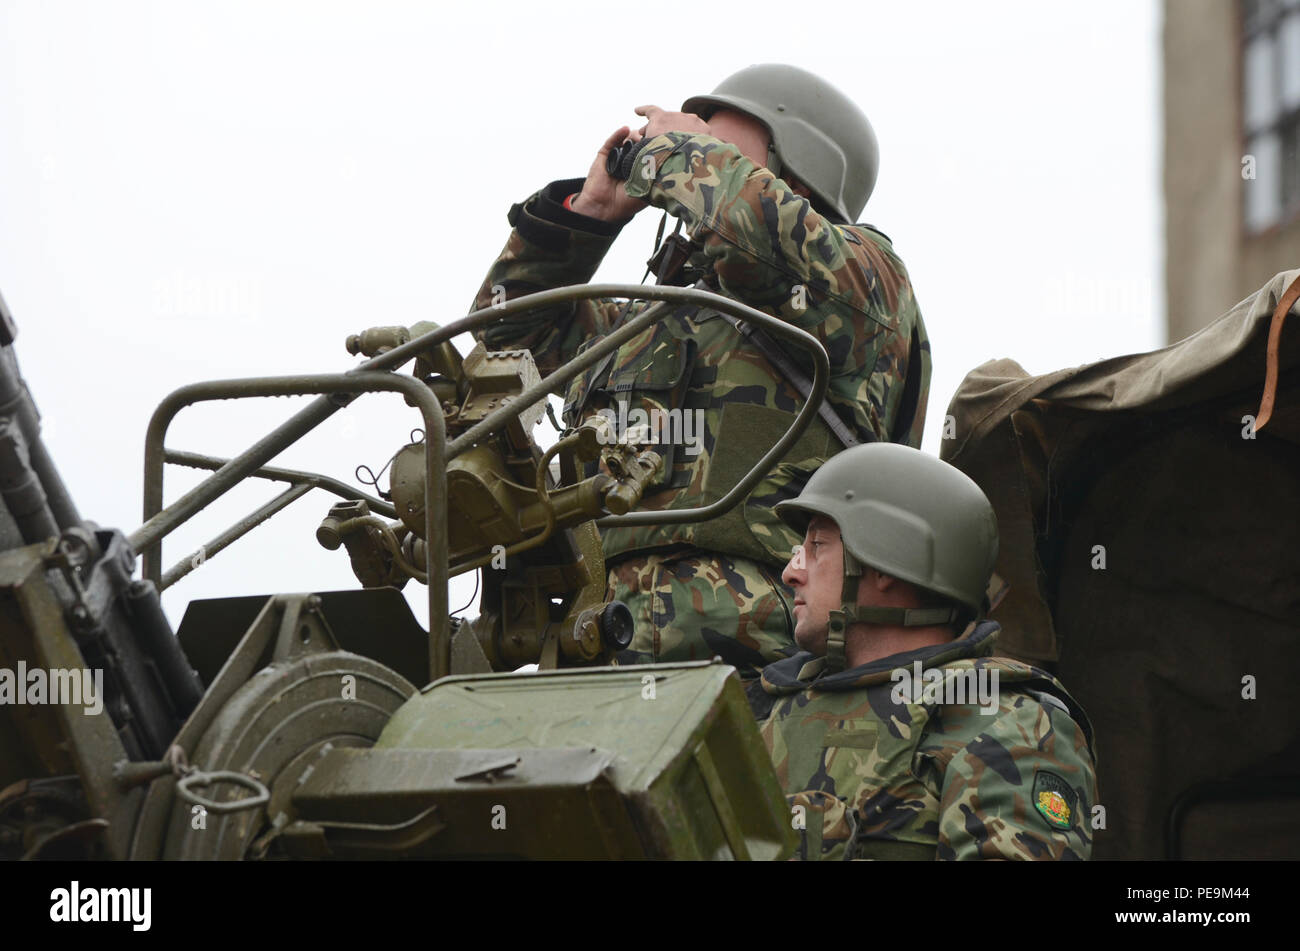 Bulgarian soldiers of 1-61st Mechanized Battalion watch for possible enemy airstrikes during Exercise Peace Sentinel at Novo Selo Training Center, Bulgaria, Nov. 24, 2015. (U.S. Army photo by Staff Sgt. Steven M. Colvin/Released) - Stock Image